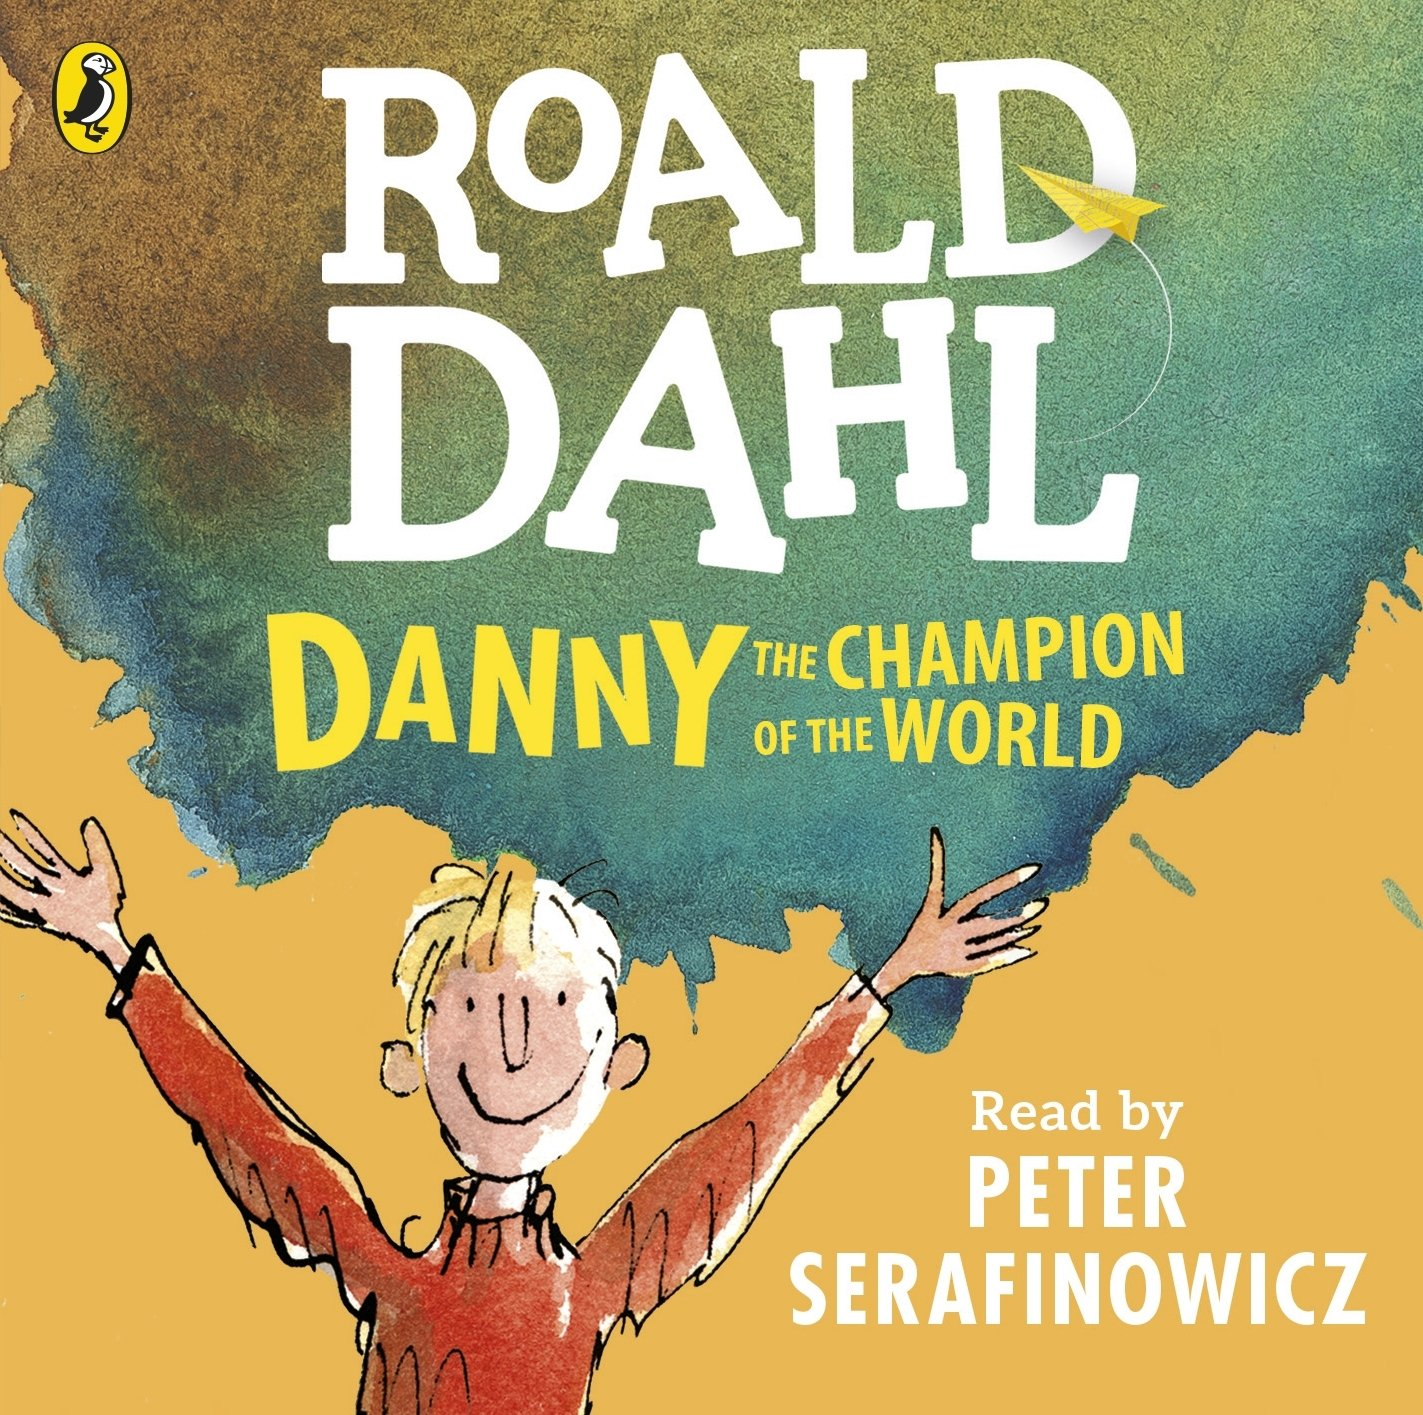 Danny the Champion of the World Press Reviews